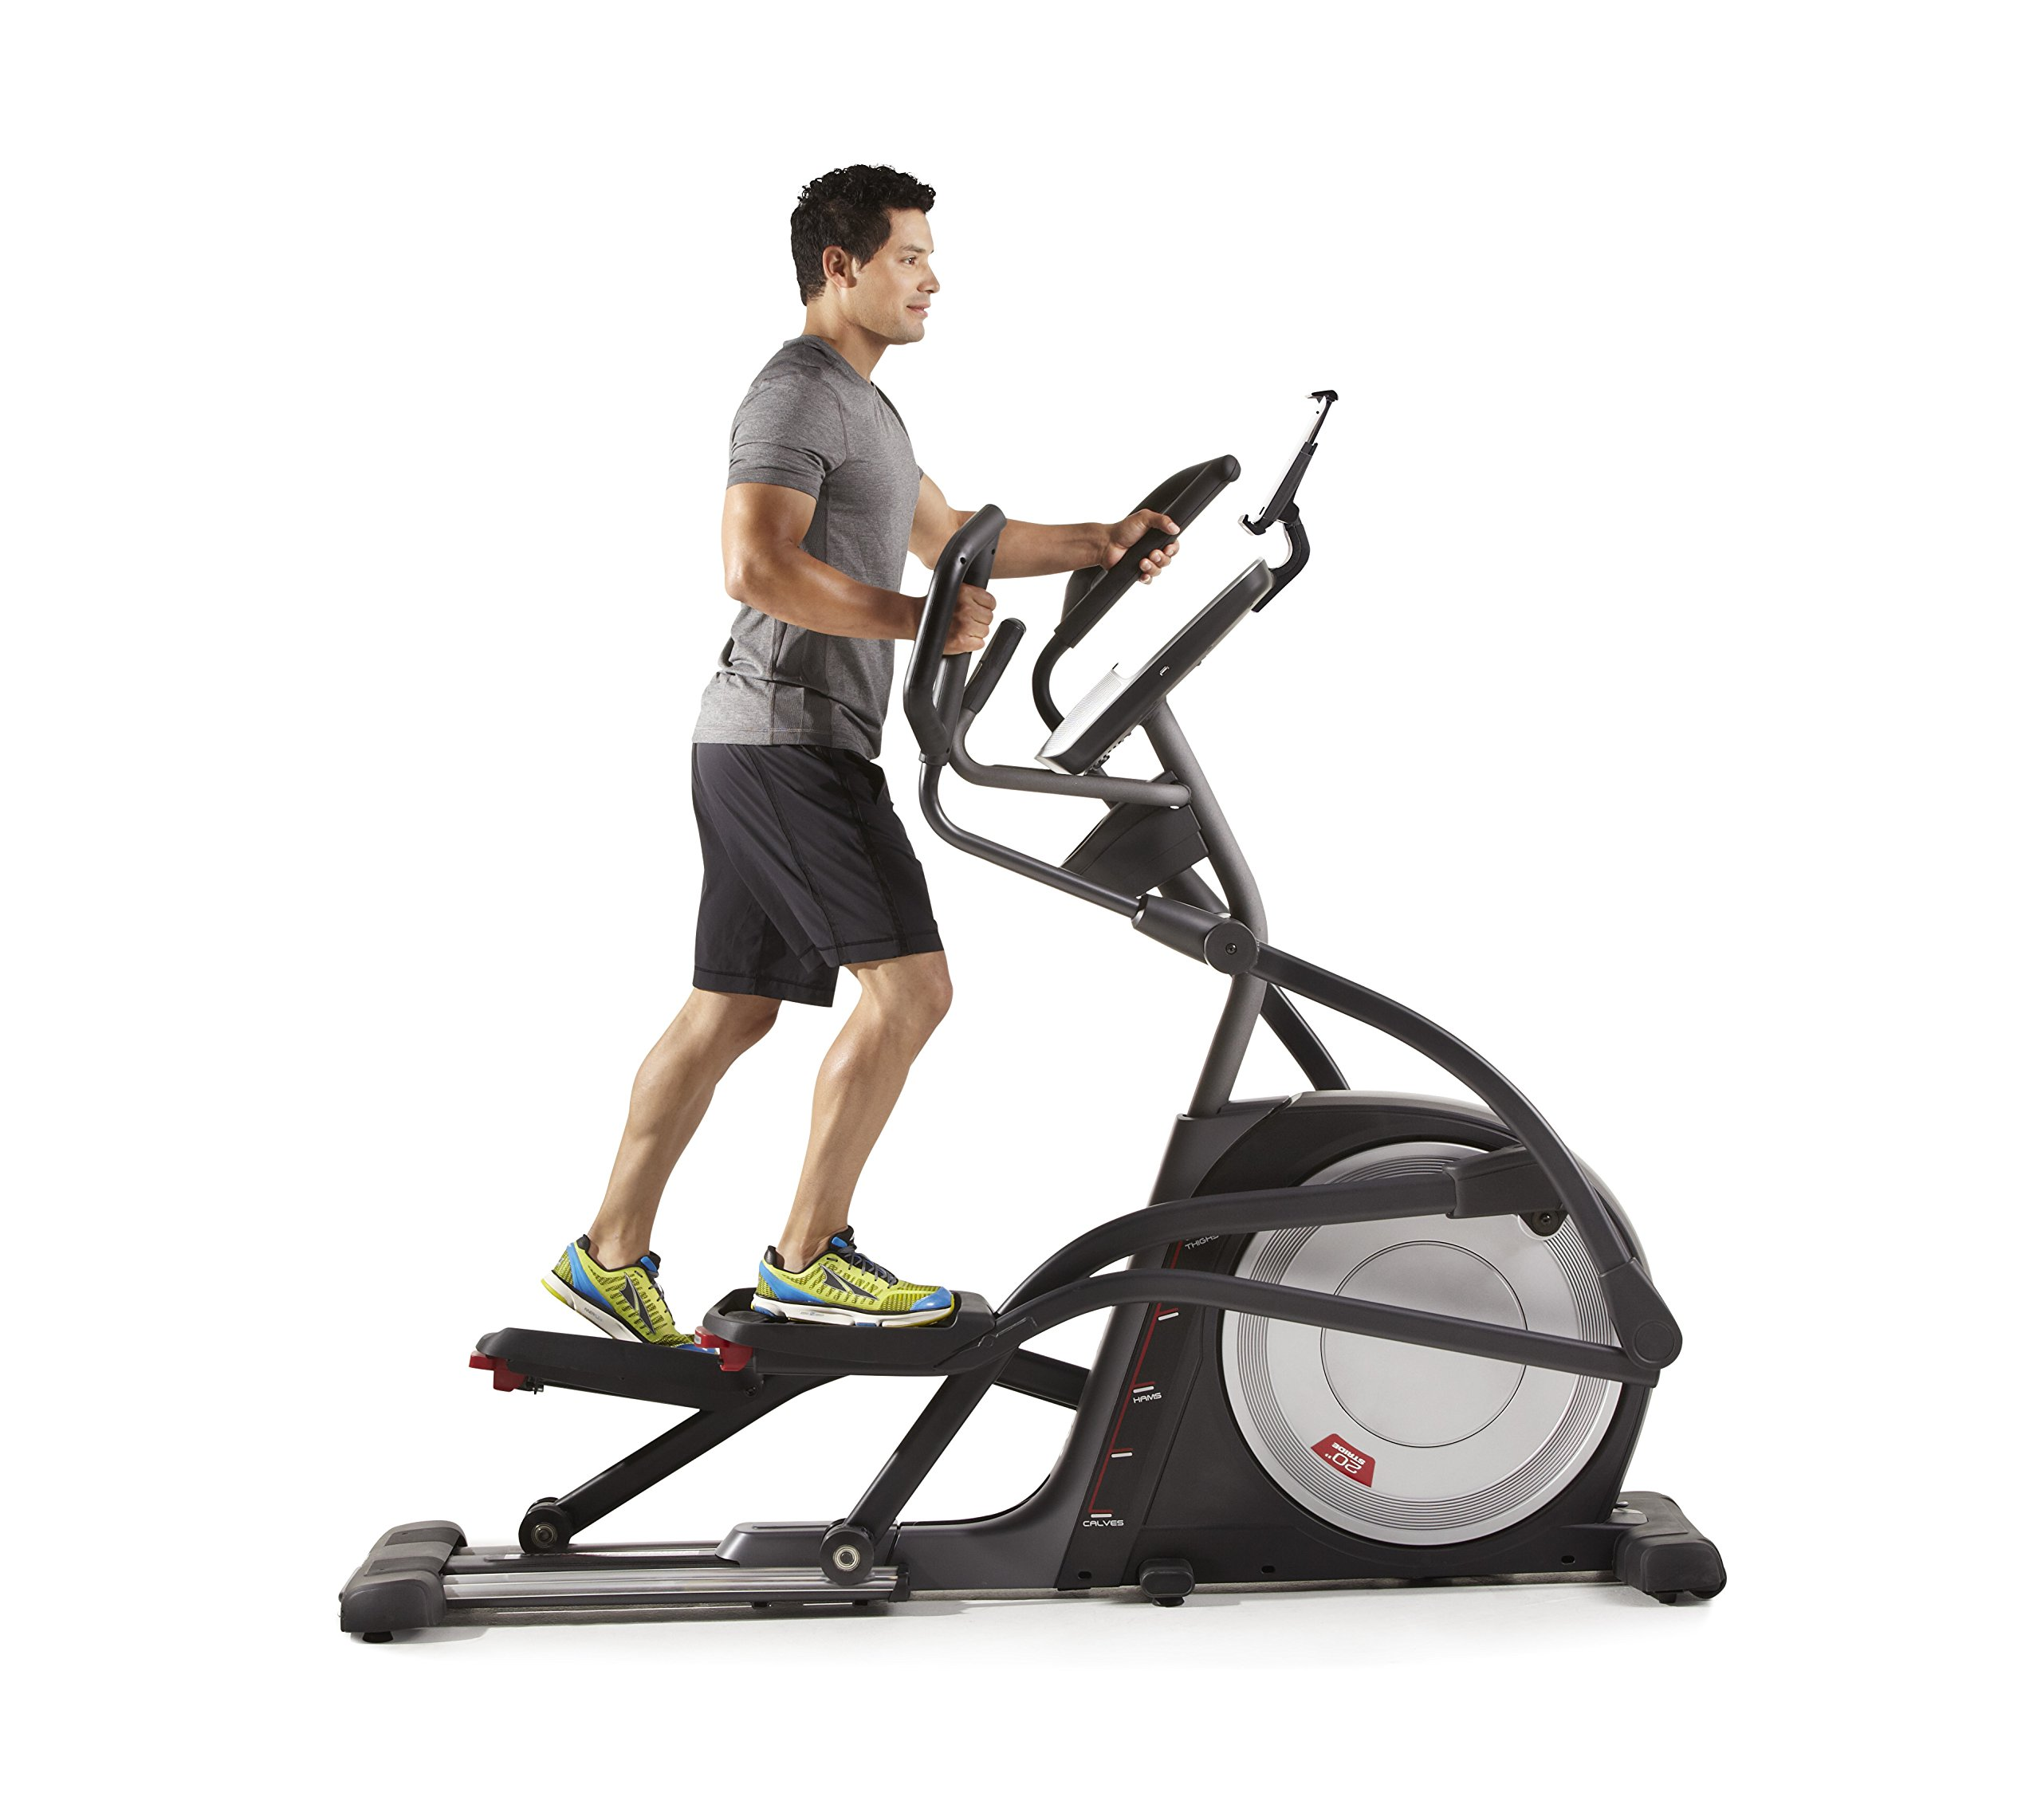 ProForm Pro 16.9 Elliptical Trainer by ProForm (Image #8)